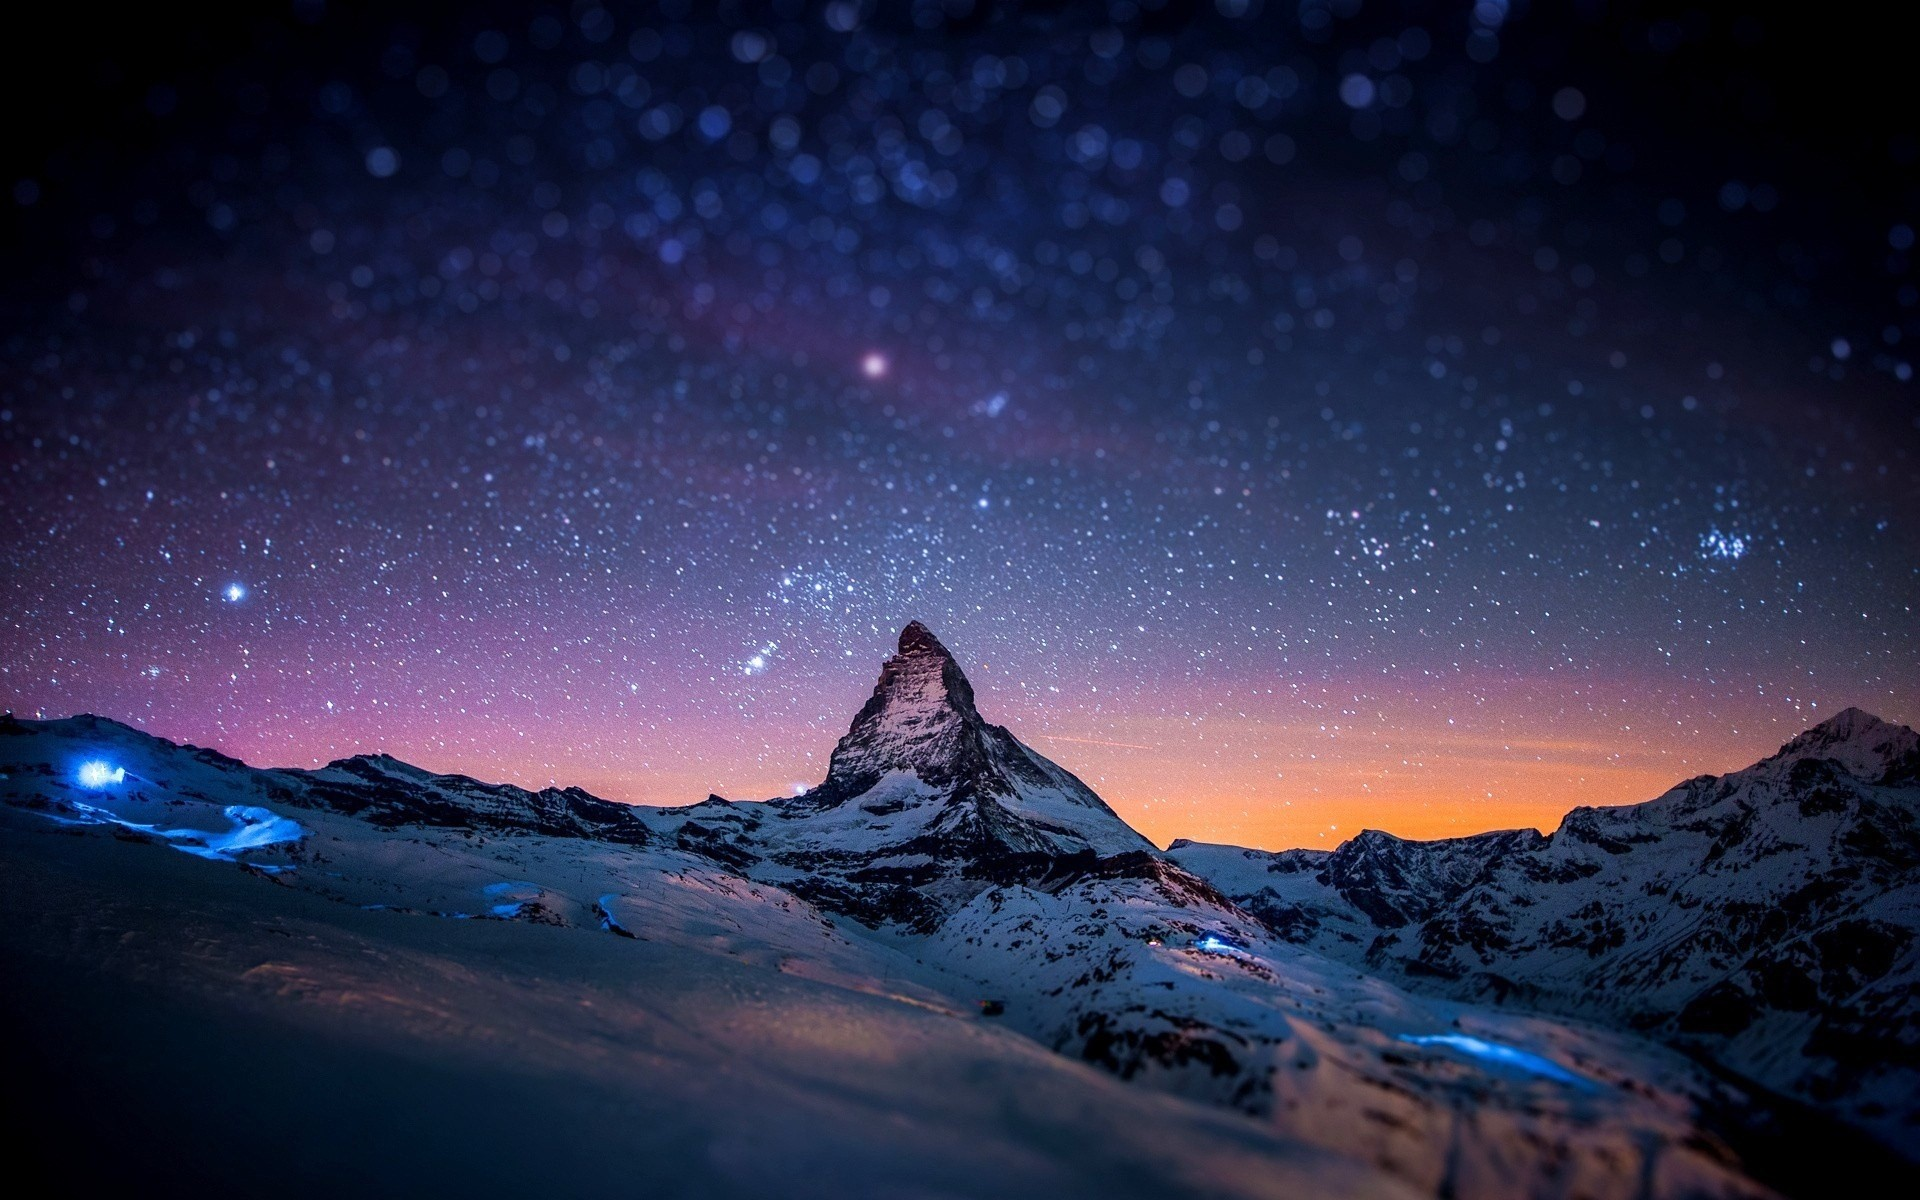 Starry Night Sky Over The Mountains Nature Desktop hd wallpaper by kyouko